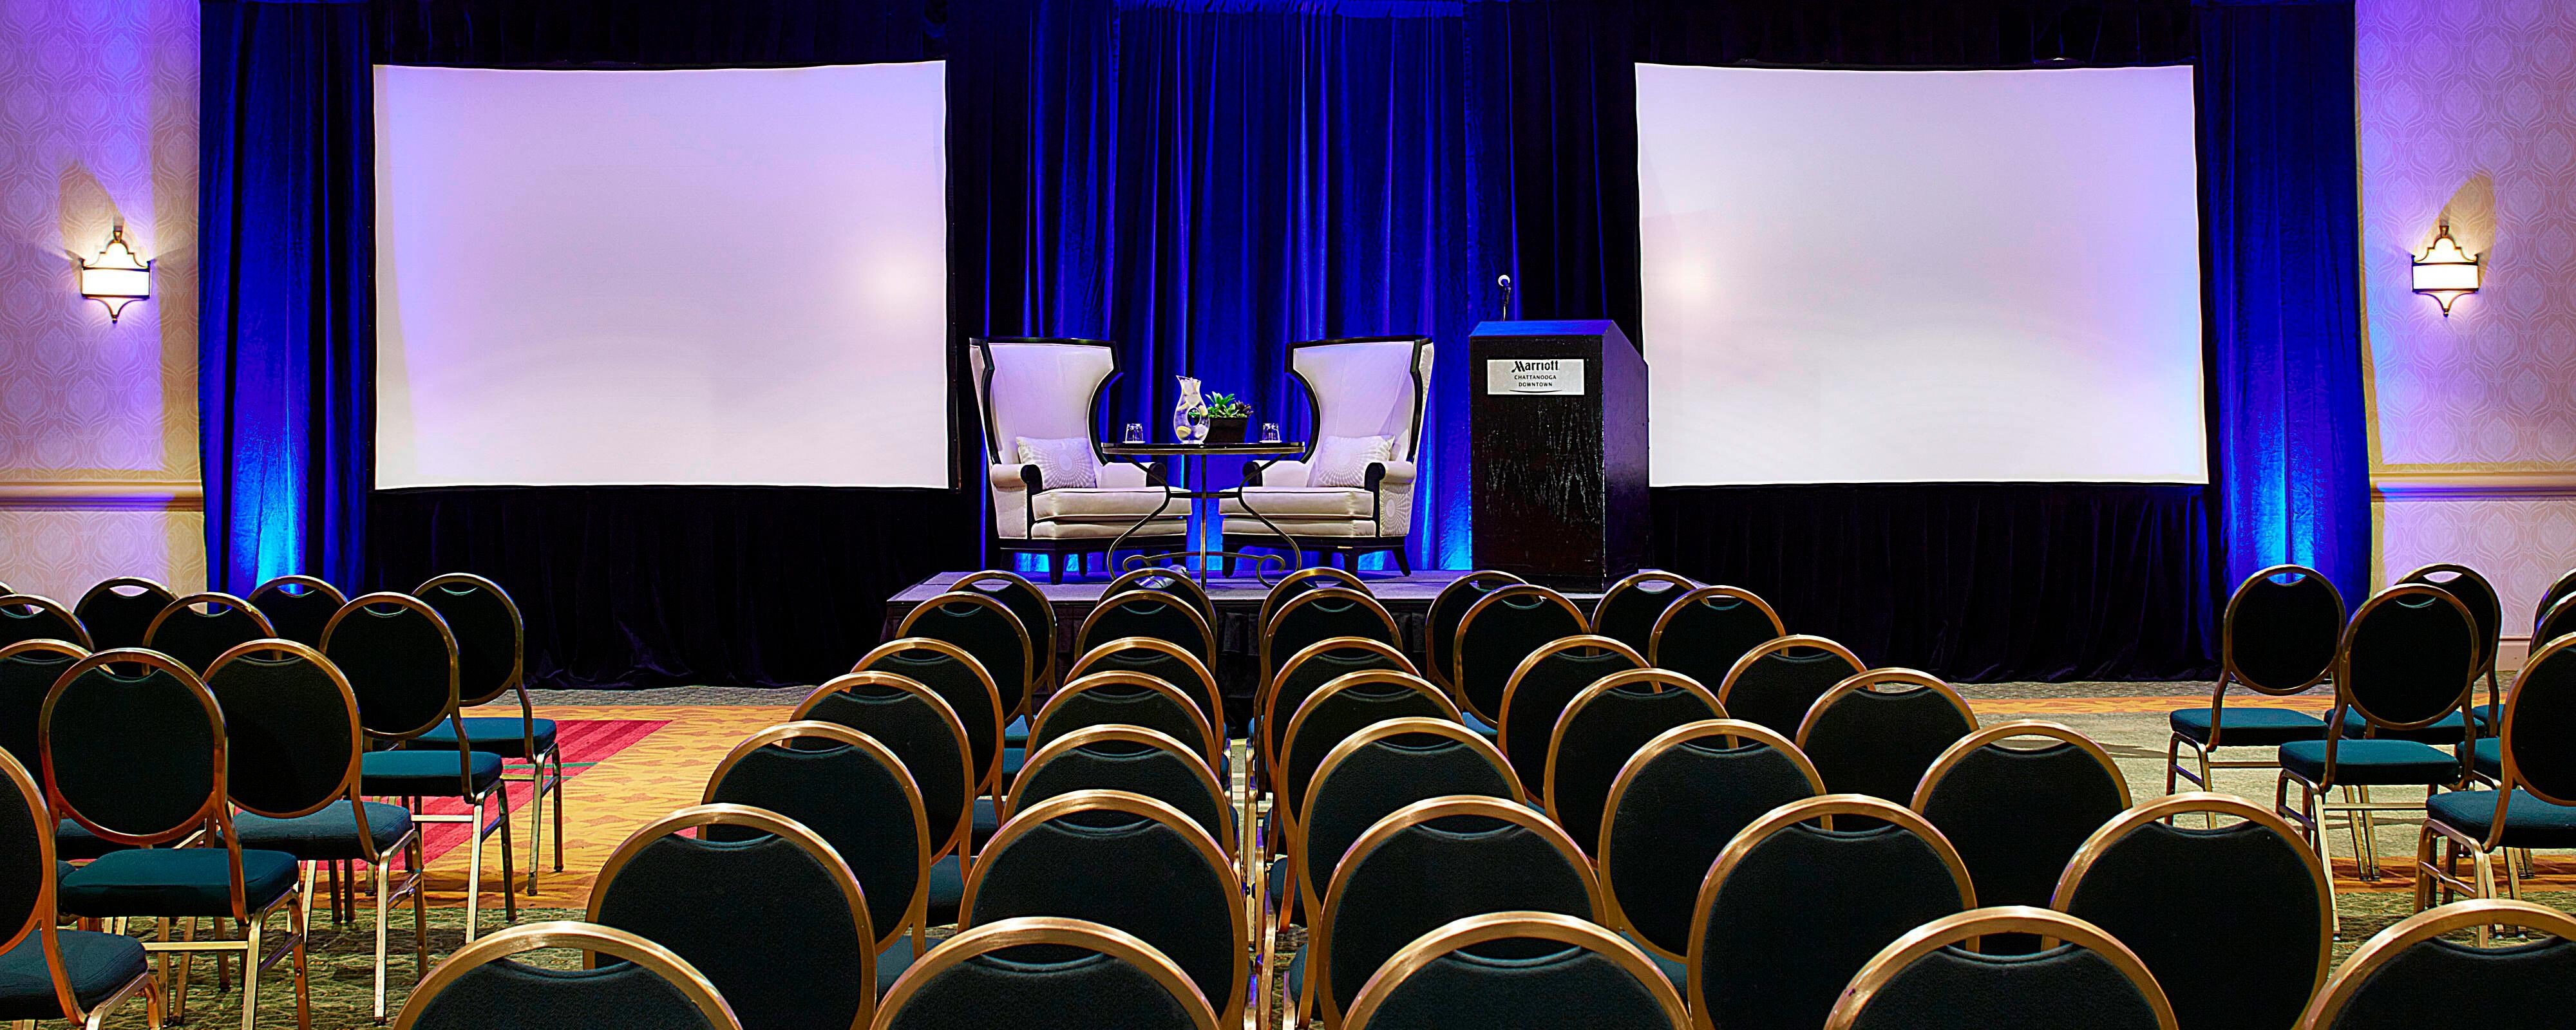 Hotel Meeting Rooms Near Convention Center Chattanooga Marriott Downtown